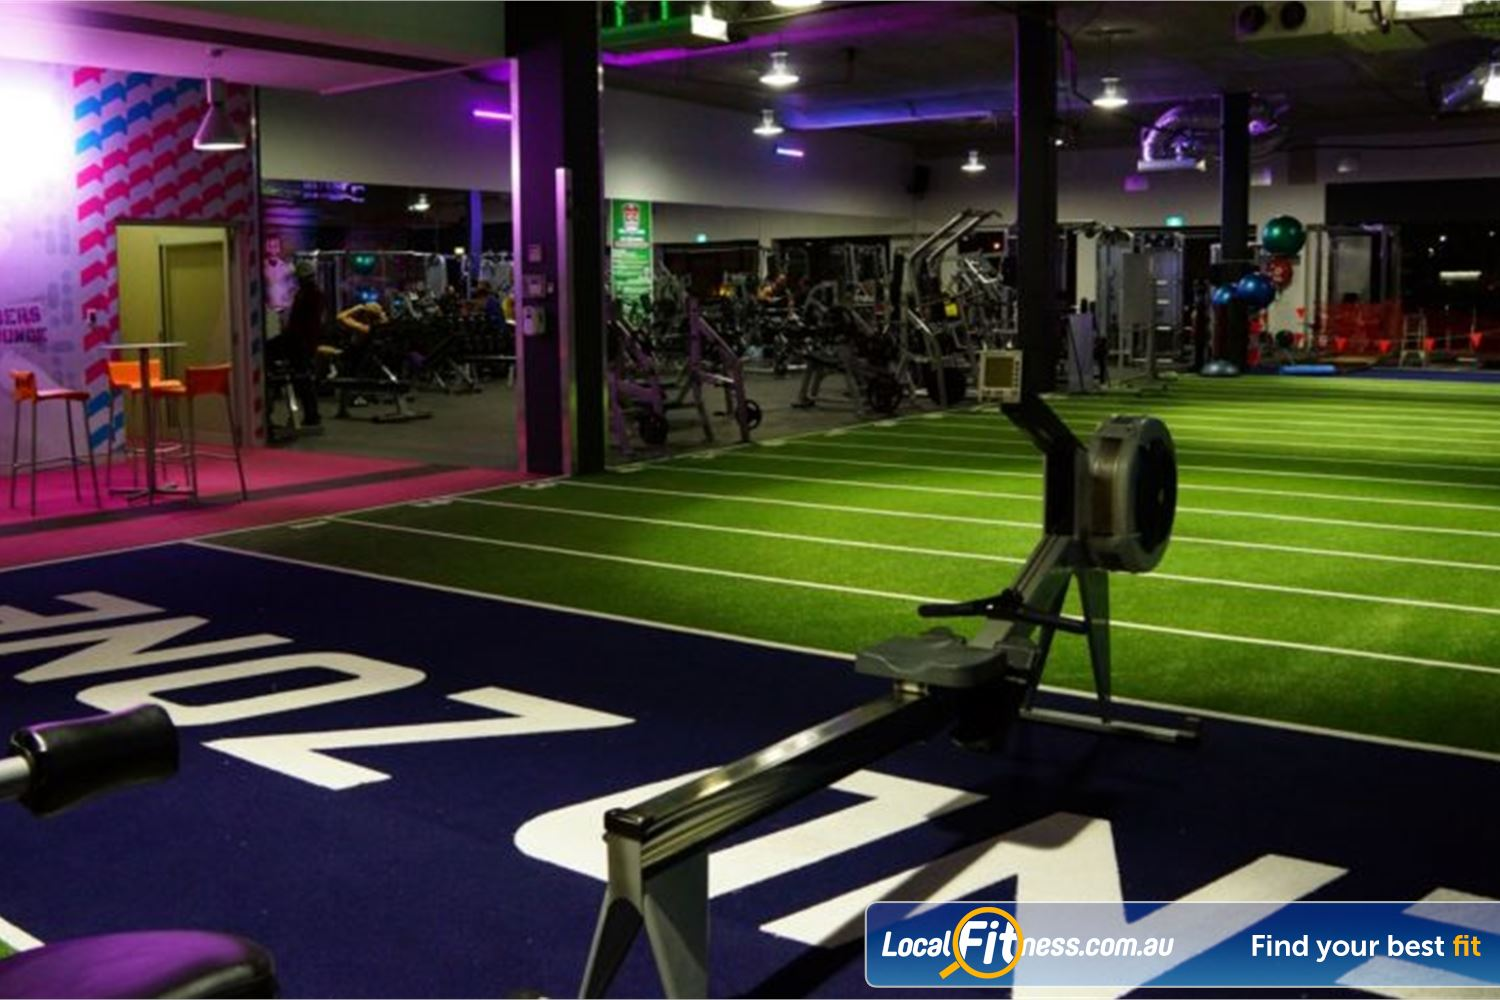 Goodlife Health Clubs Beenleigh Join our range of Beenleigh HIIT gym classes.